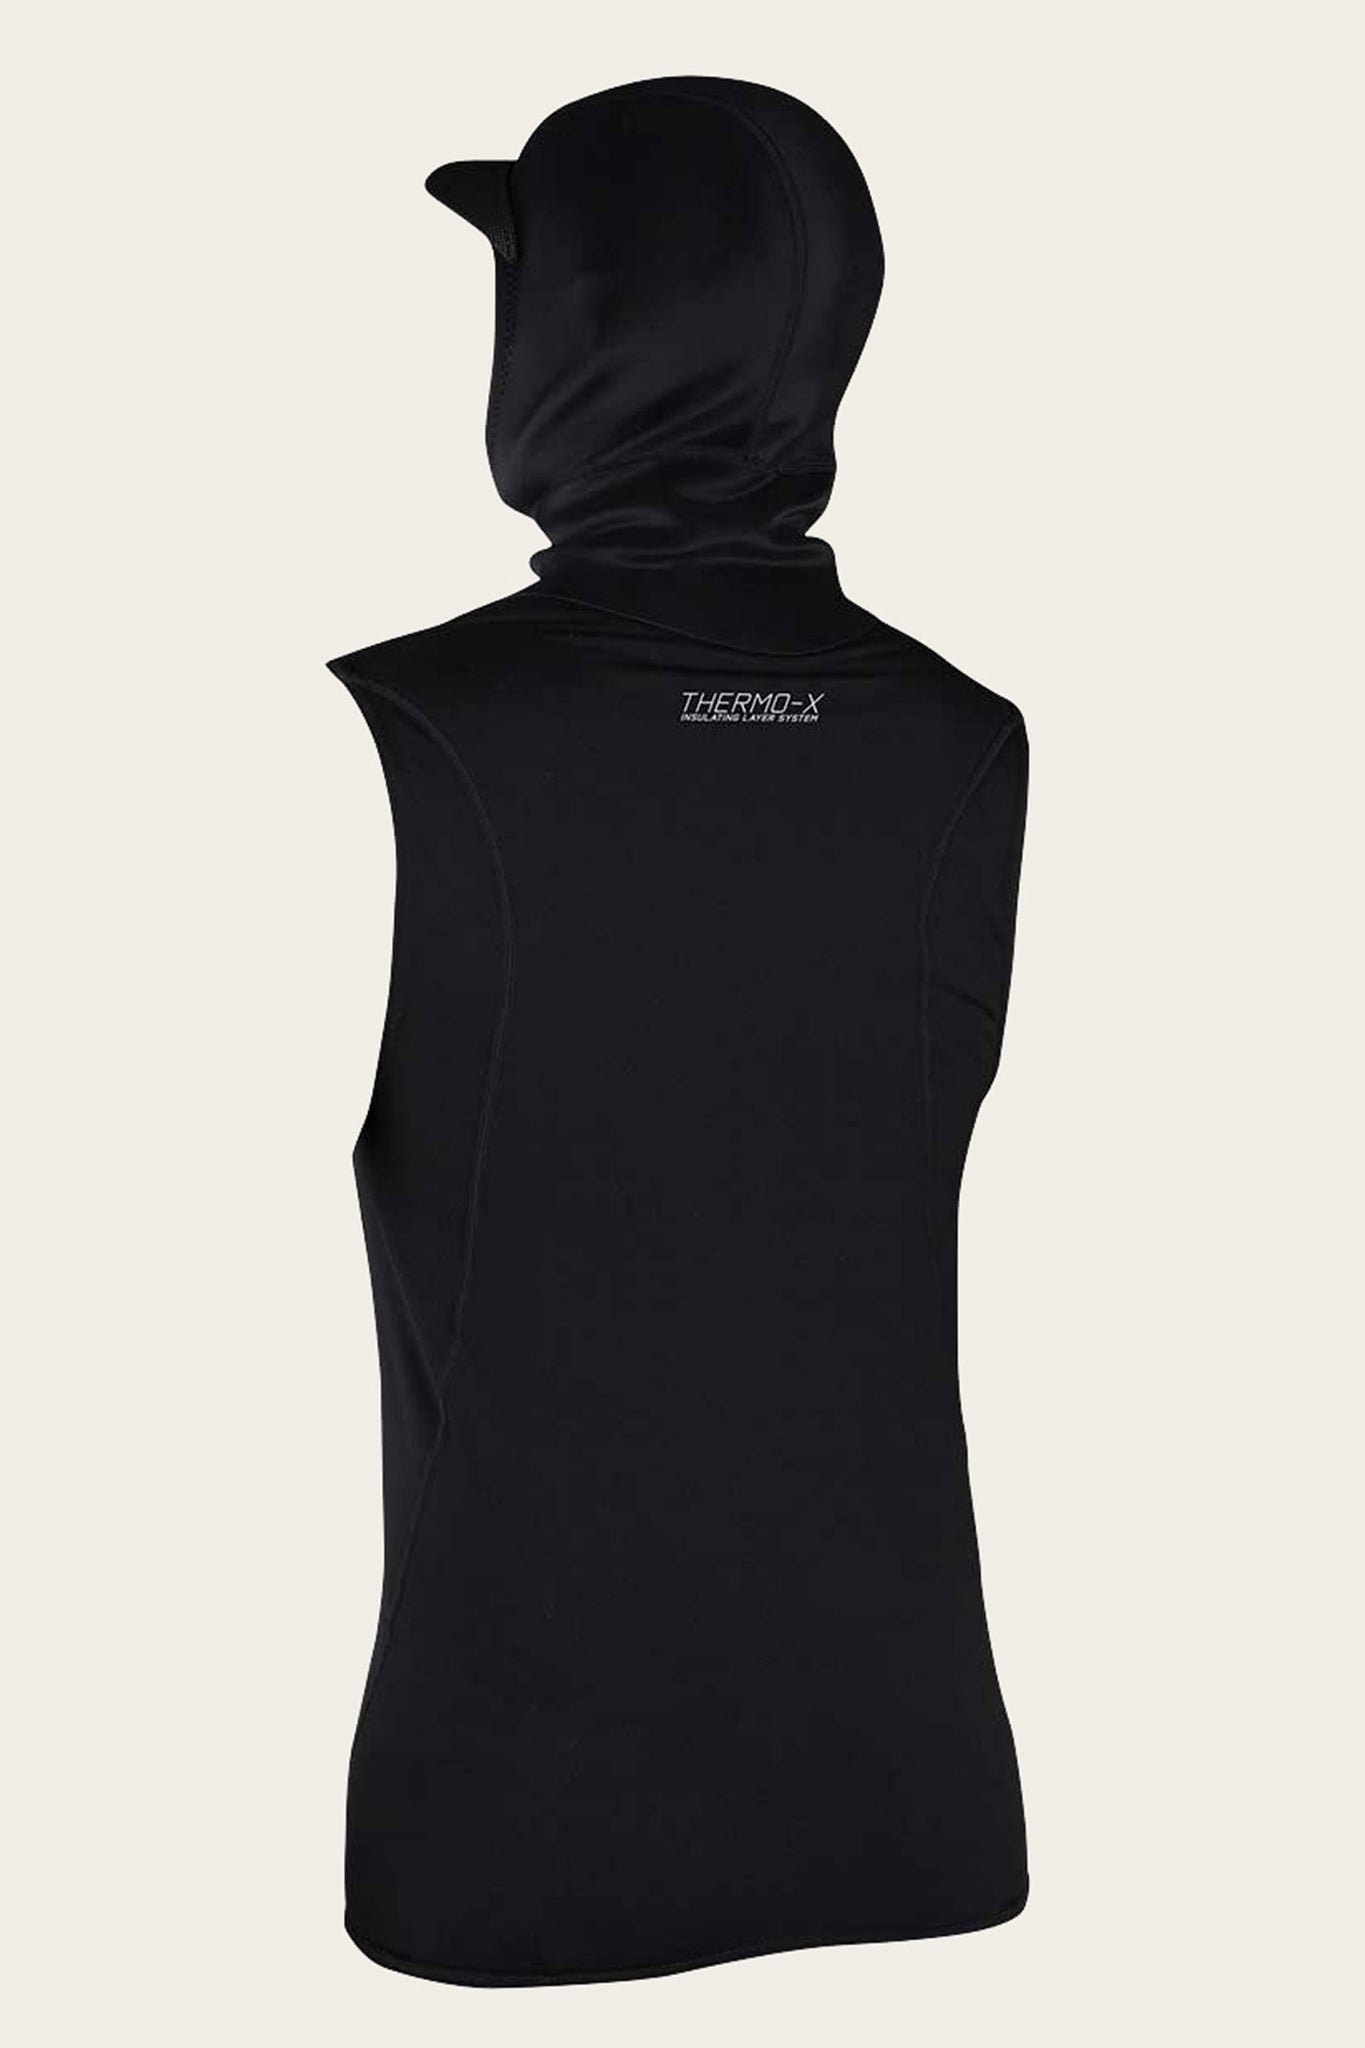 2020 O/'Neill Thermo-X Short Sleeve Crew Top 5021 Black